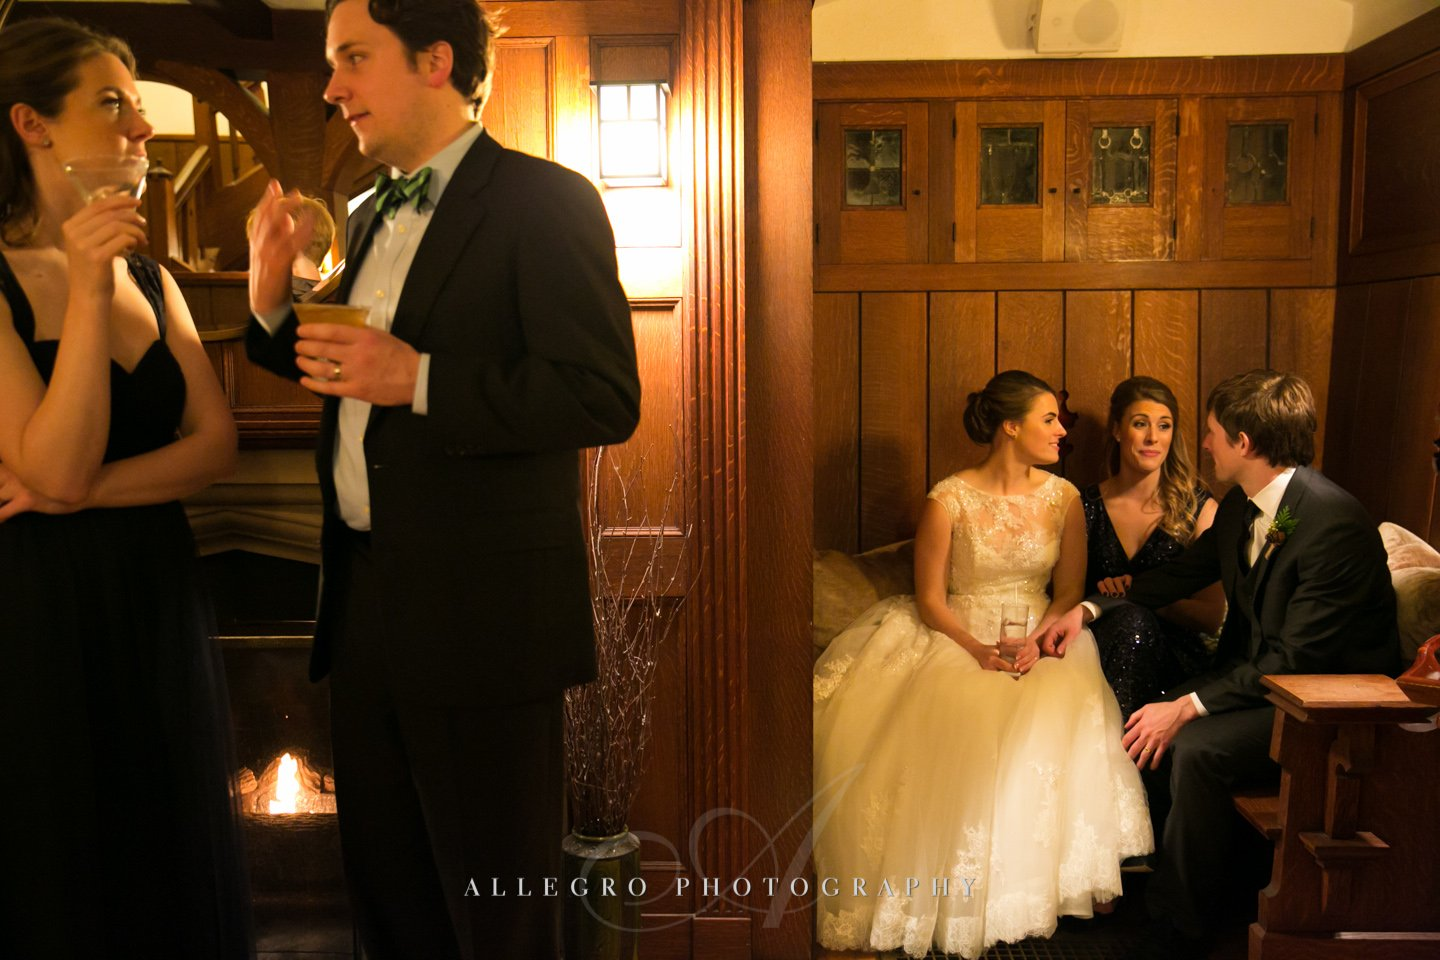 couple in a corner - photo by allegro photography